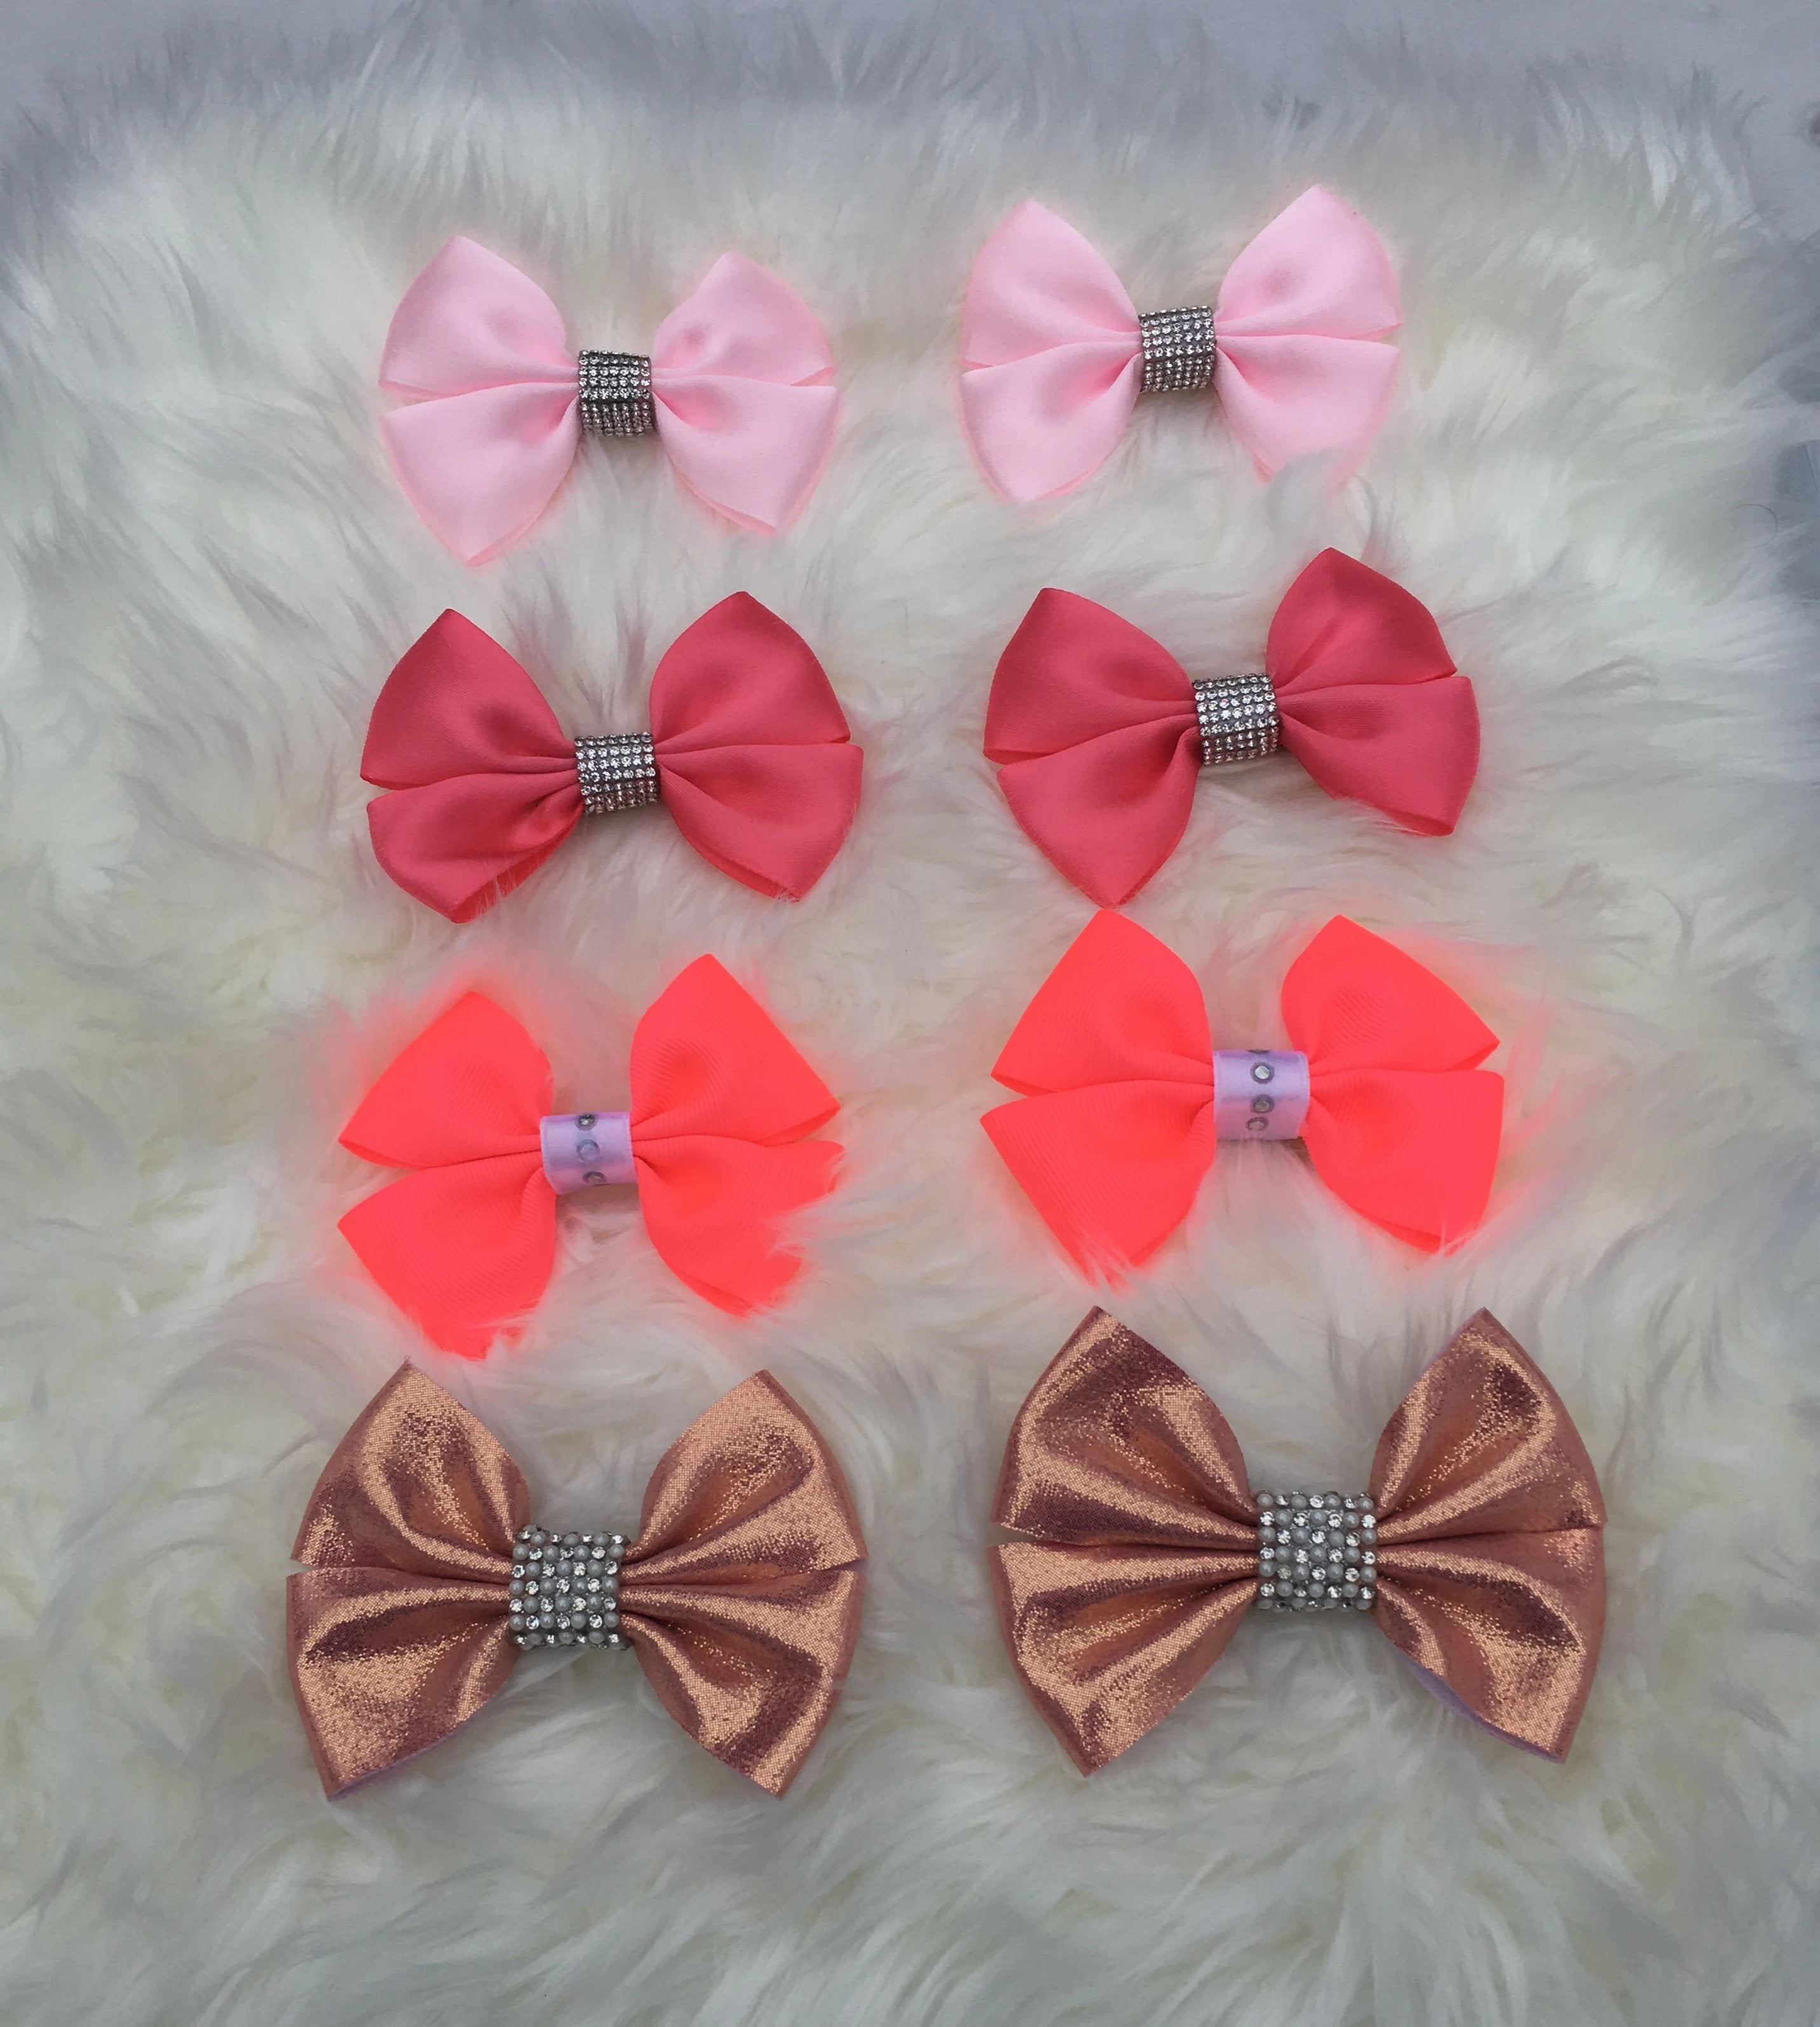 Pinky Promise Handmade Piggies (4 Different Styles/Colors) (US Fast Shipping) (BUY 2 SETS GET 1 SET FREE)